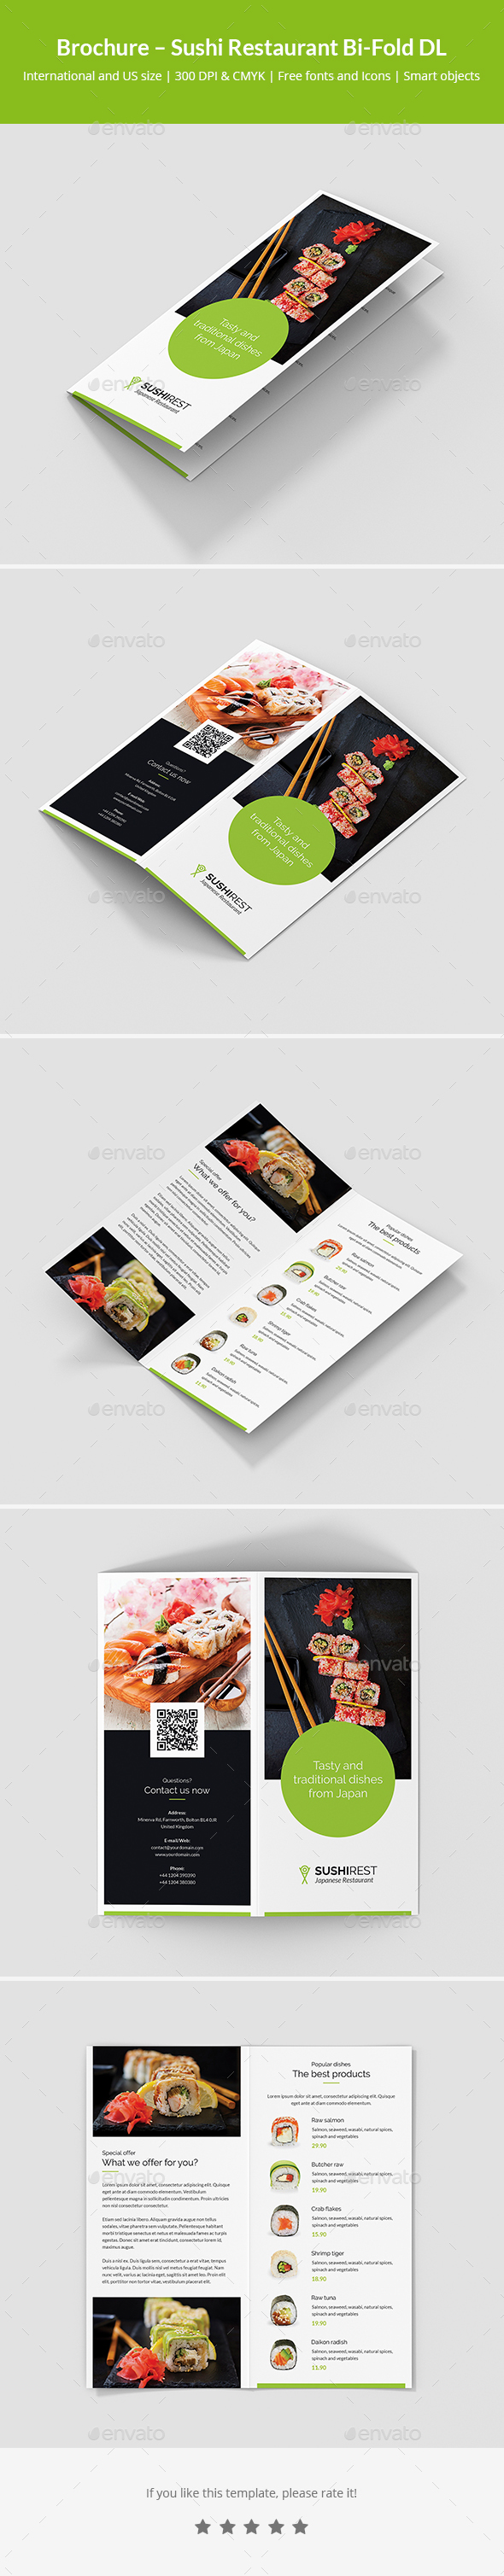 GraphicRiver Brochure Sushi Restaurant Bi-Fold DL 21139245